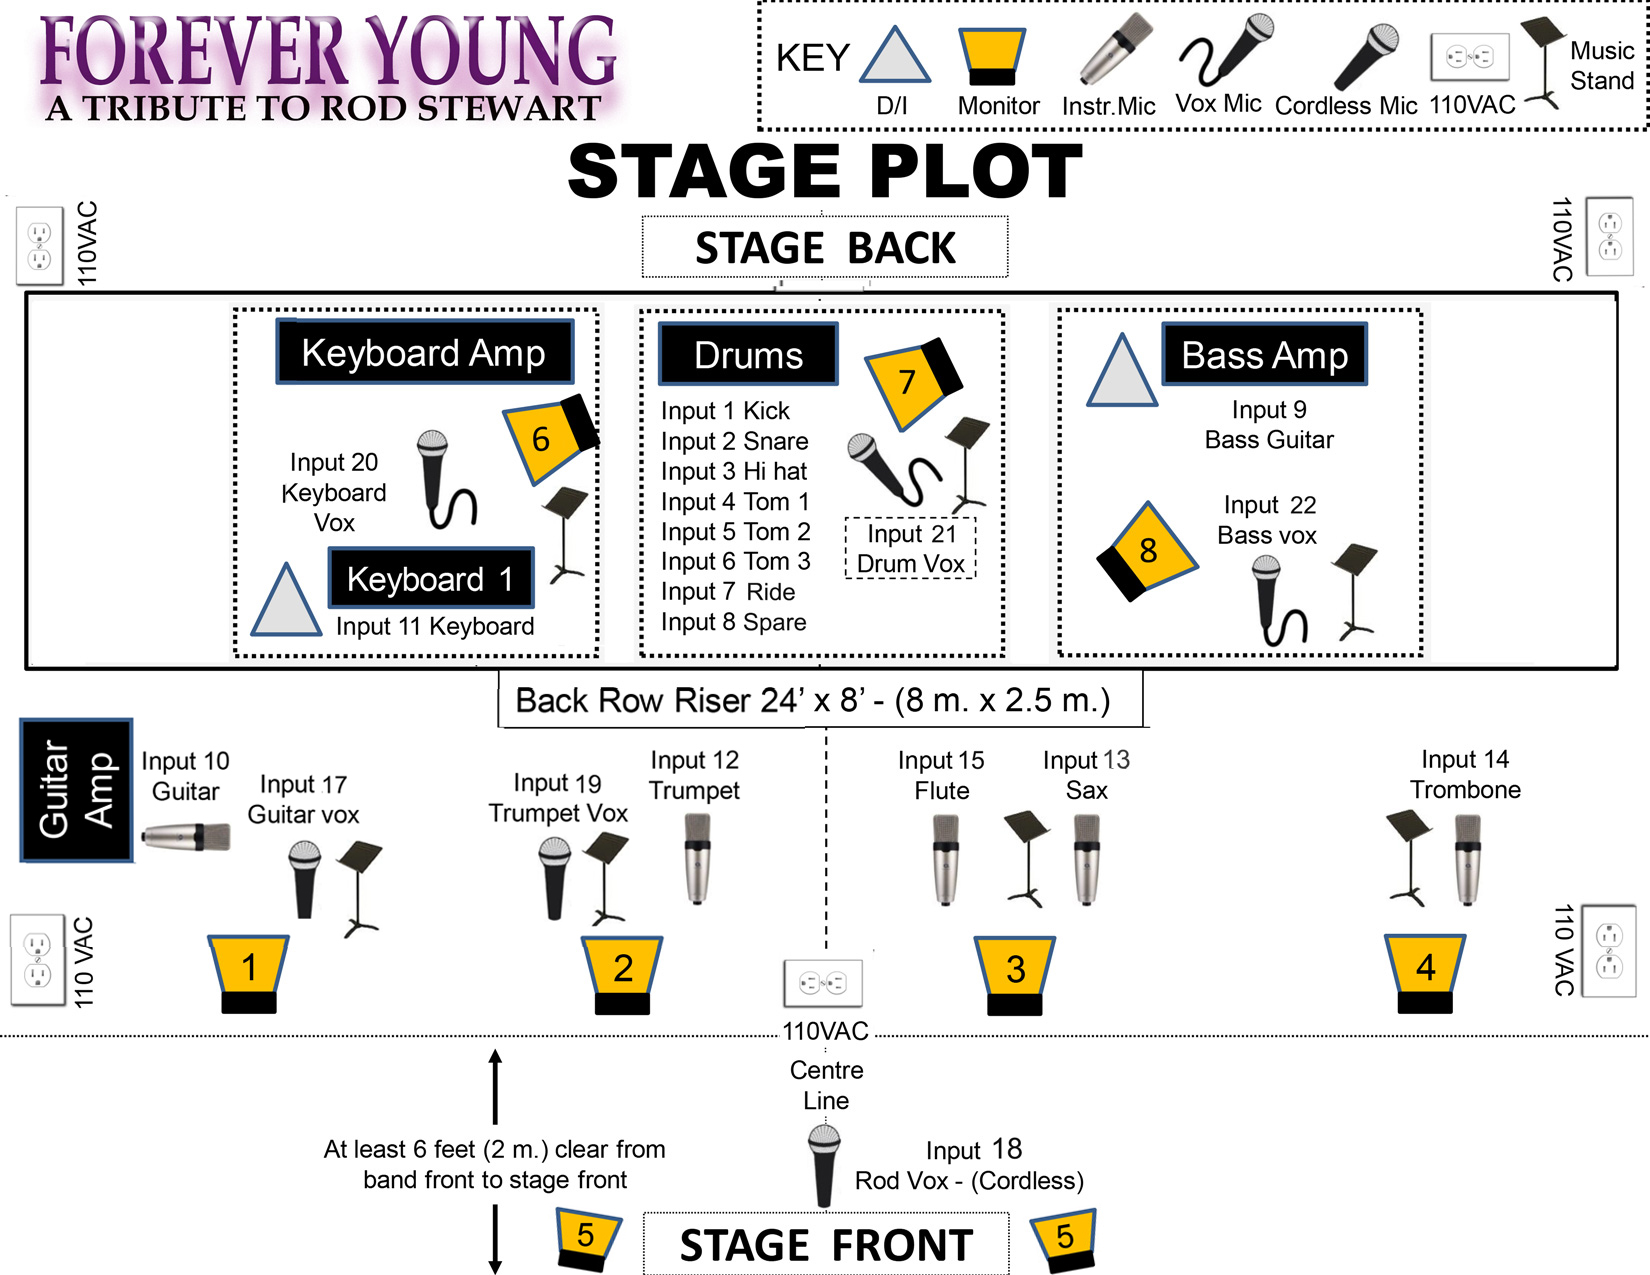 FOREVER YOUNG ~ Stage Plot